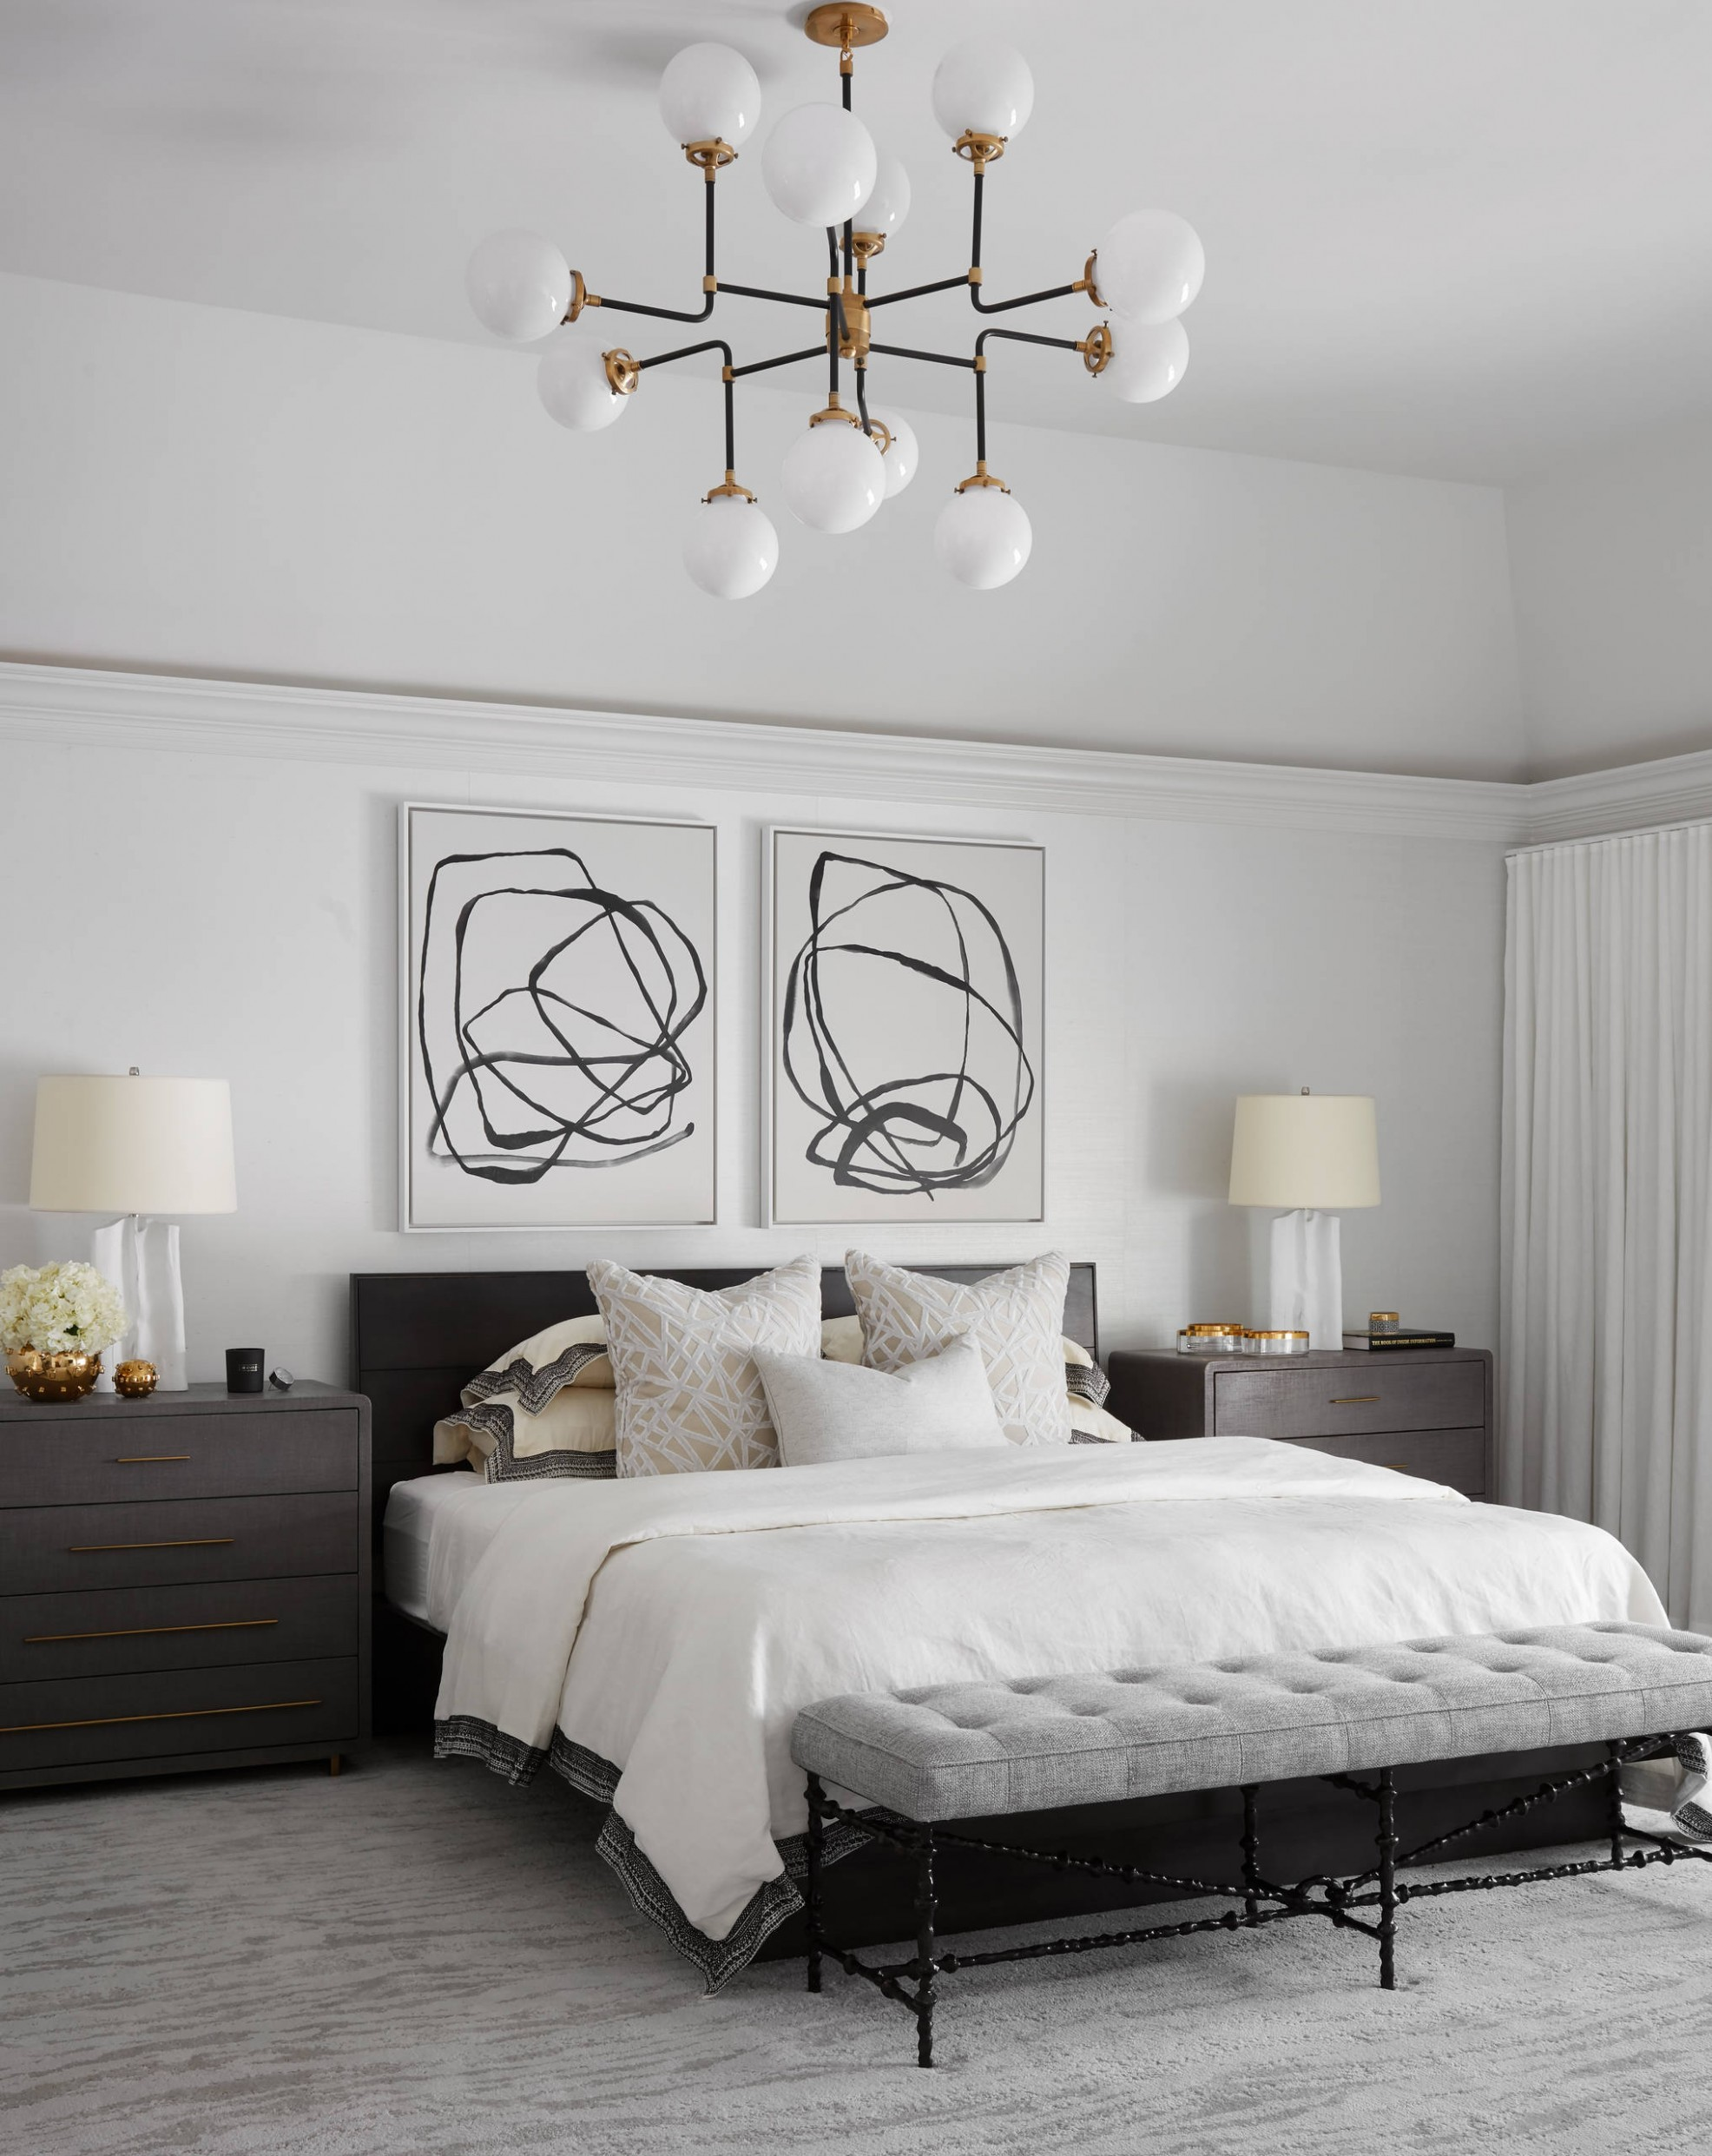 11 Beautiful Contemporary Bedroom Pictures & Ideas November 11  - Bedroom Ideas Houzz